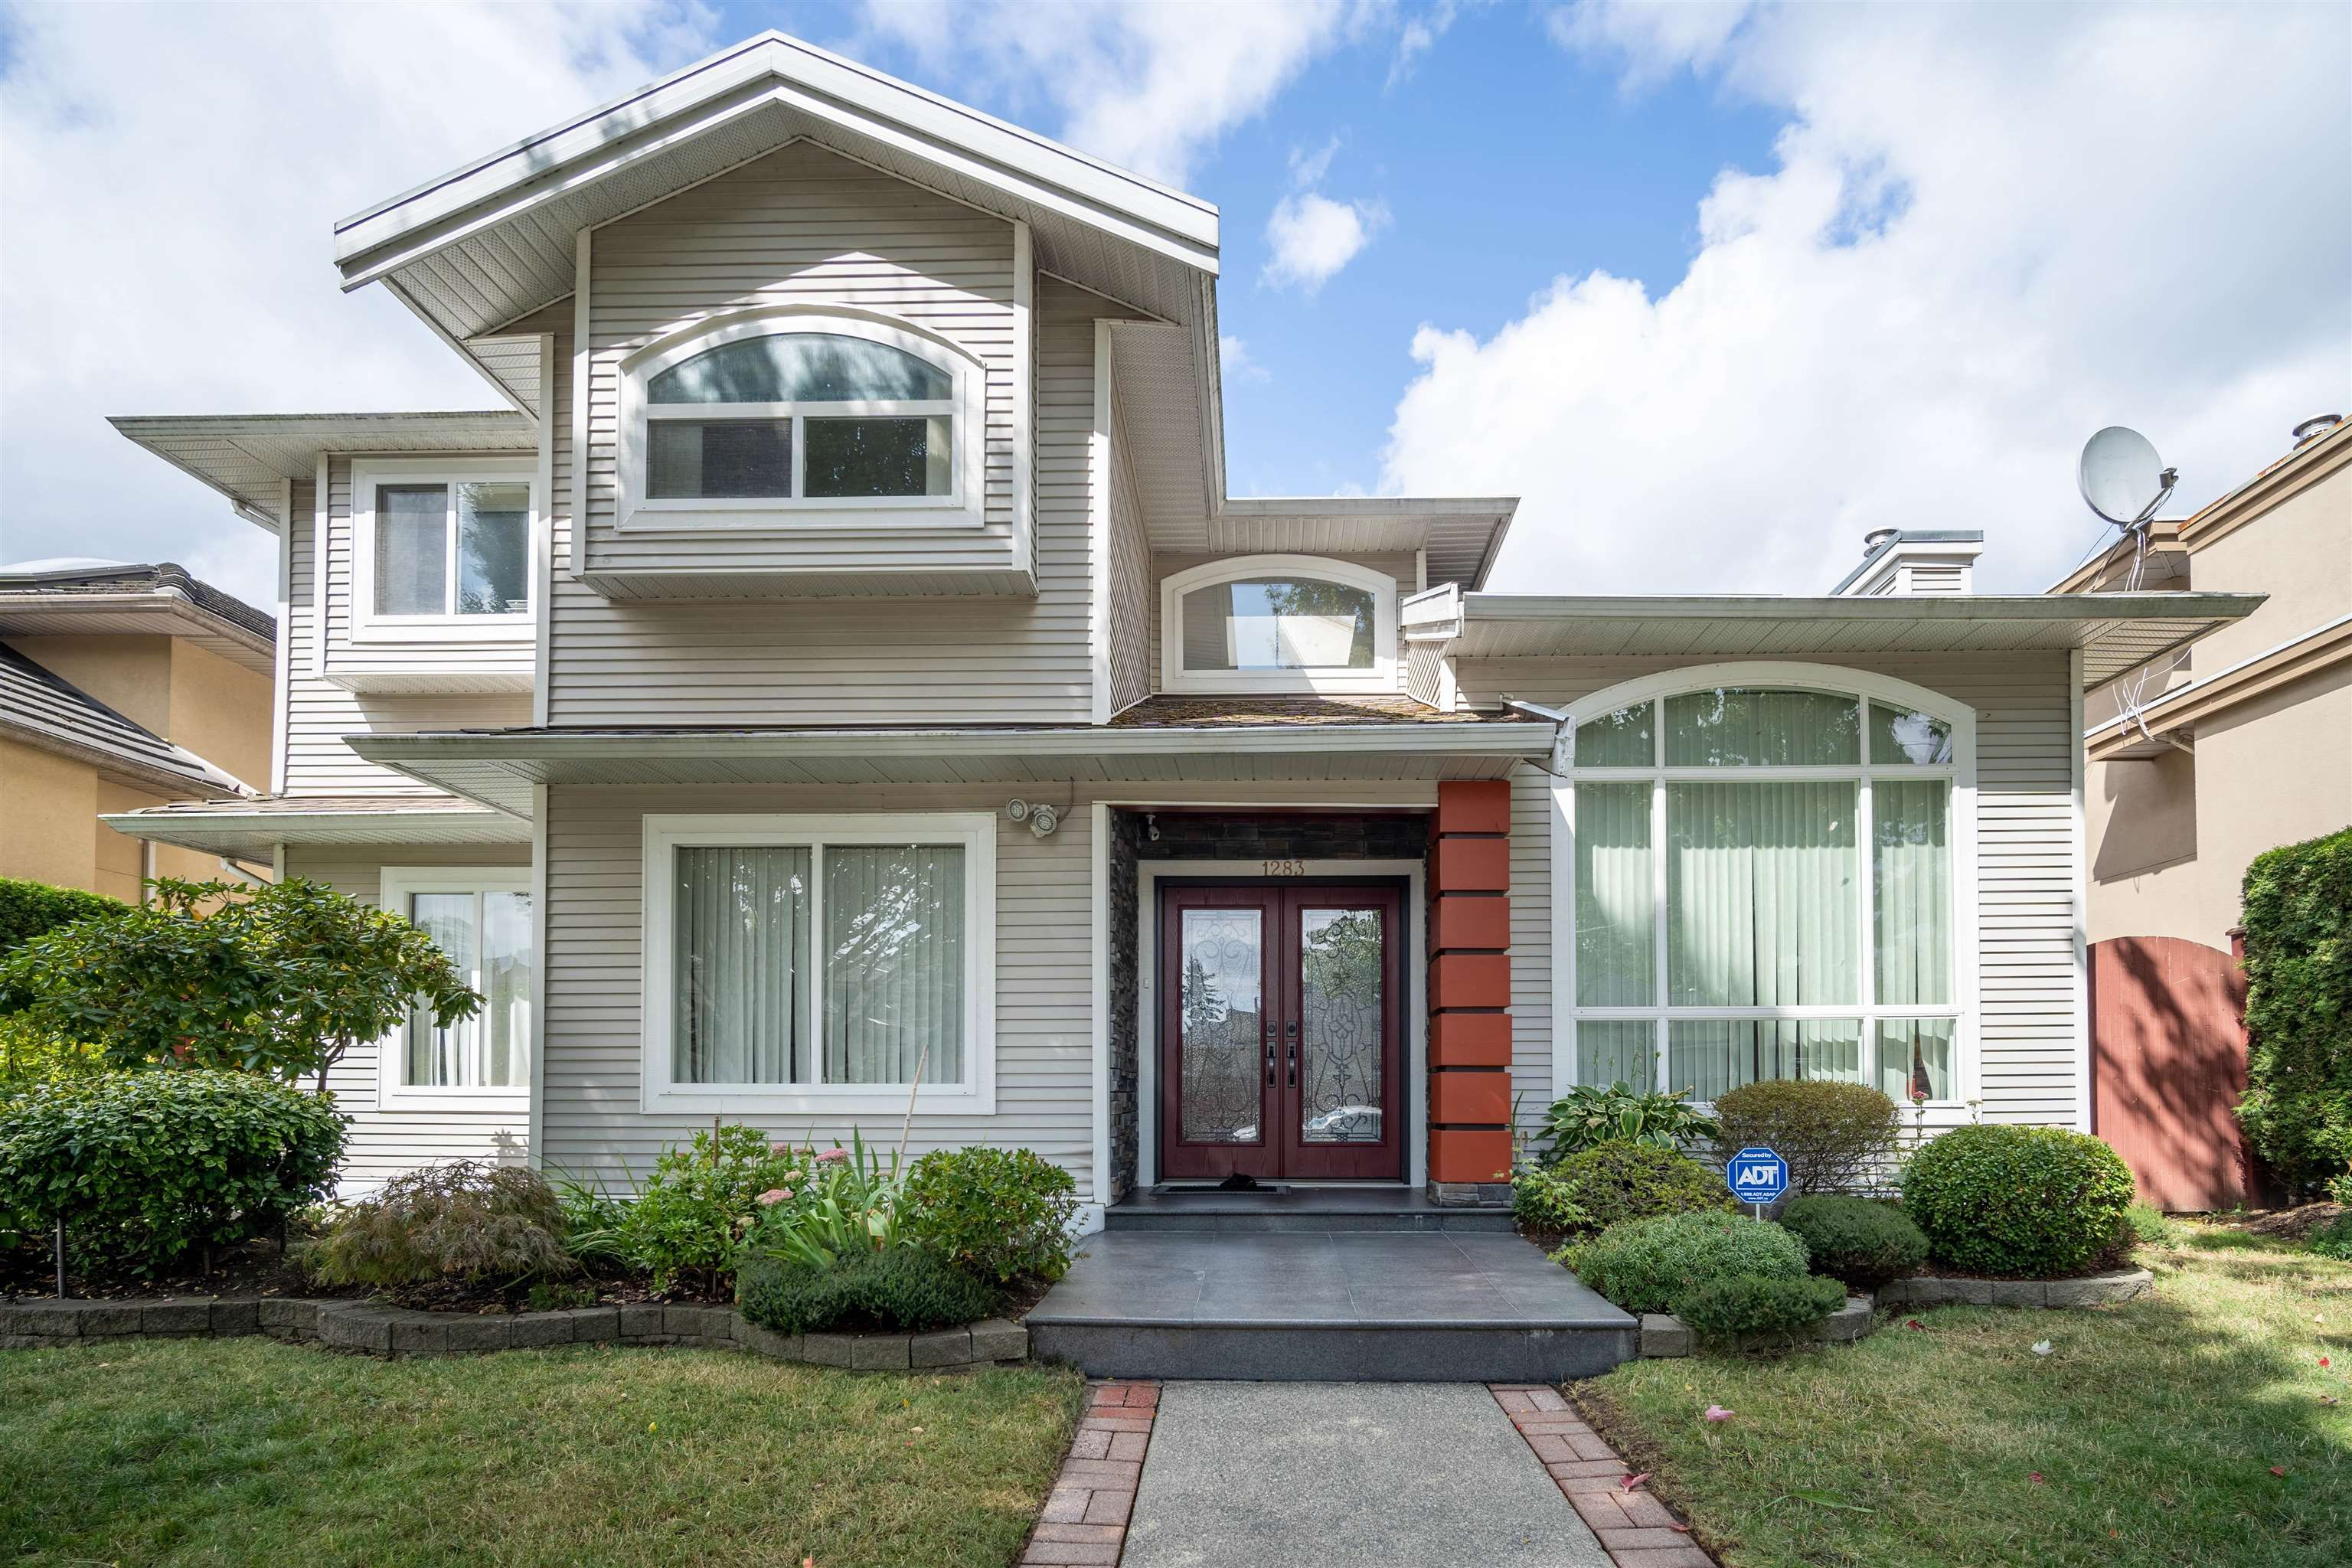 Main Photo: 1283 DAN LEE Avenue in New Westminster: Queensborough House for sale : MLS®# R2622620